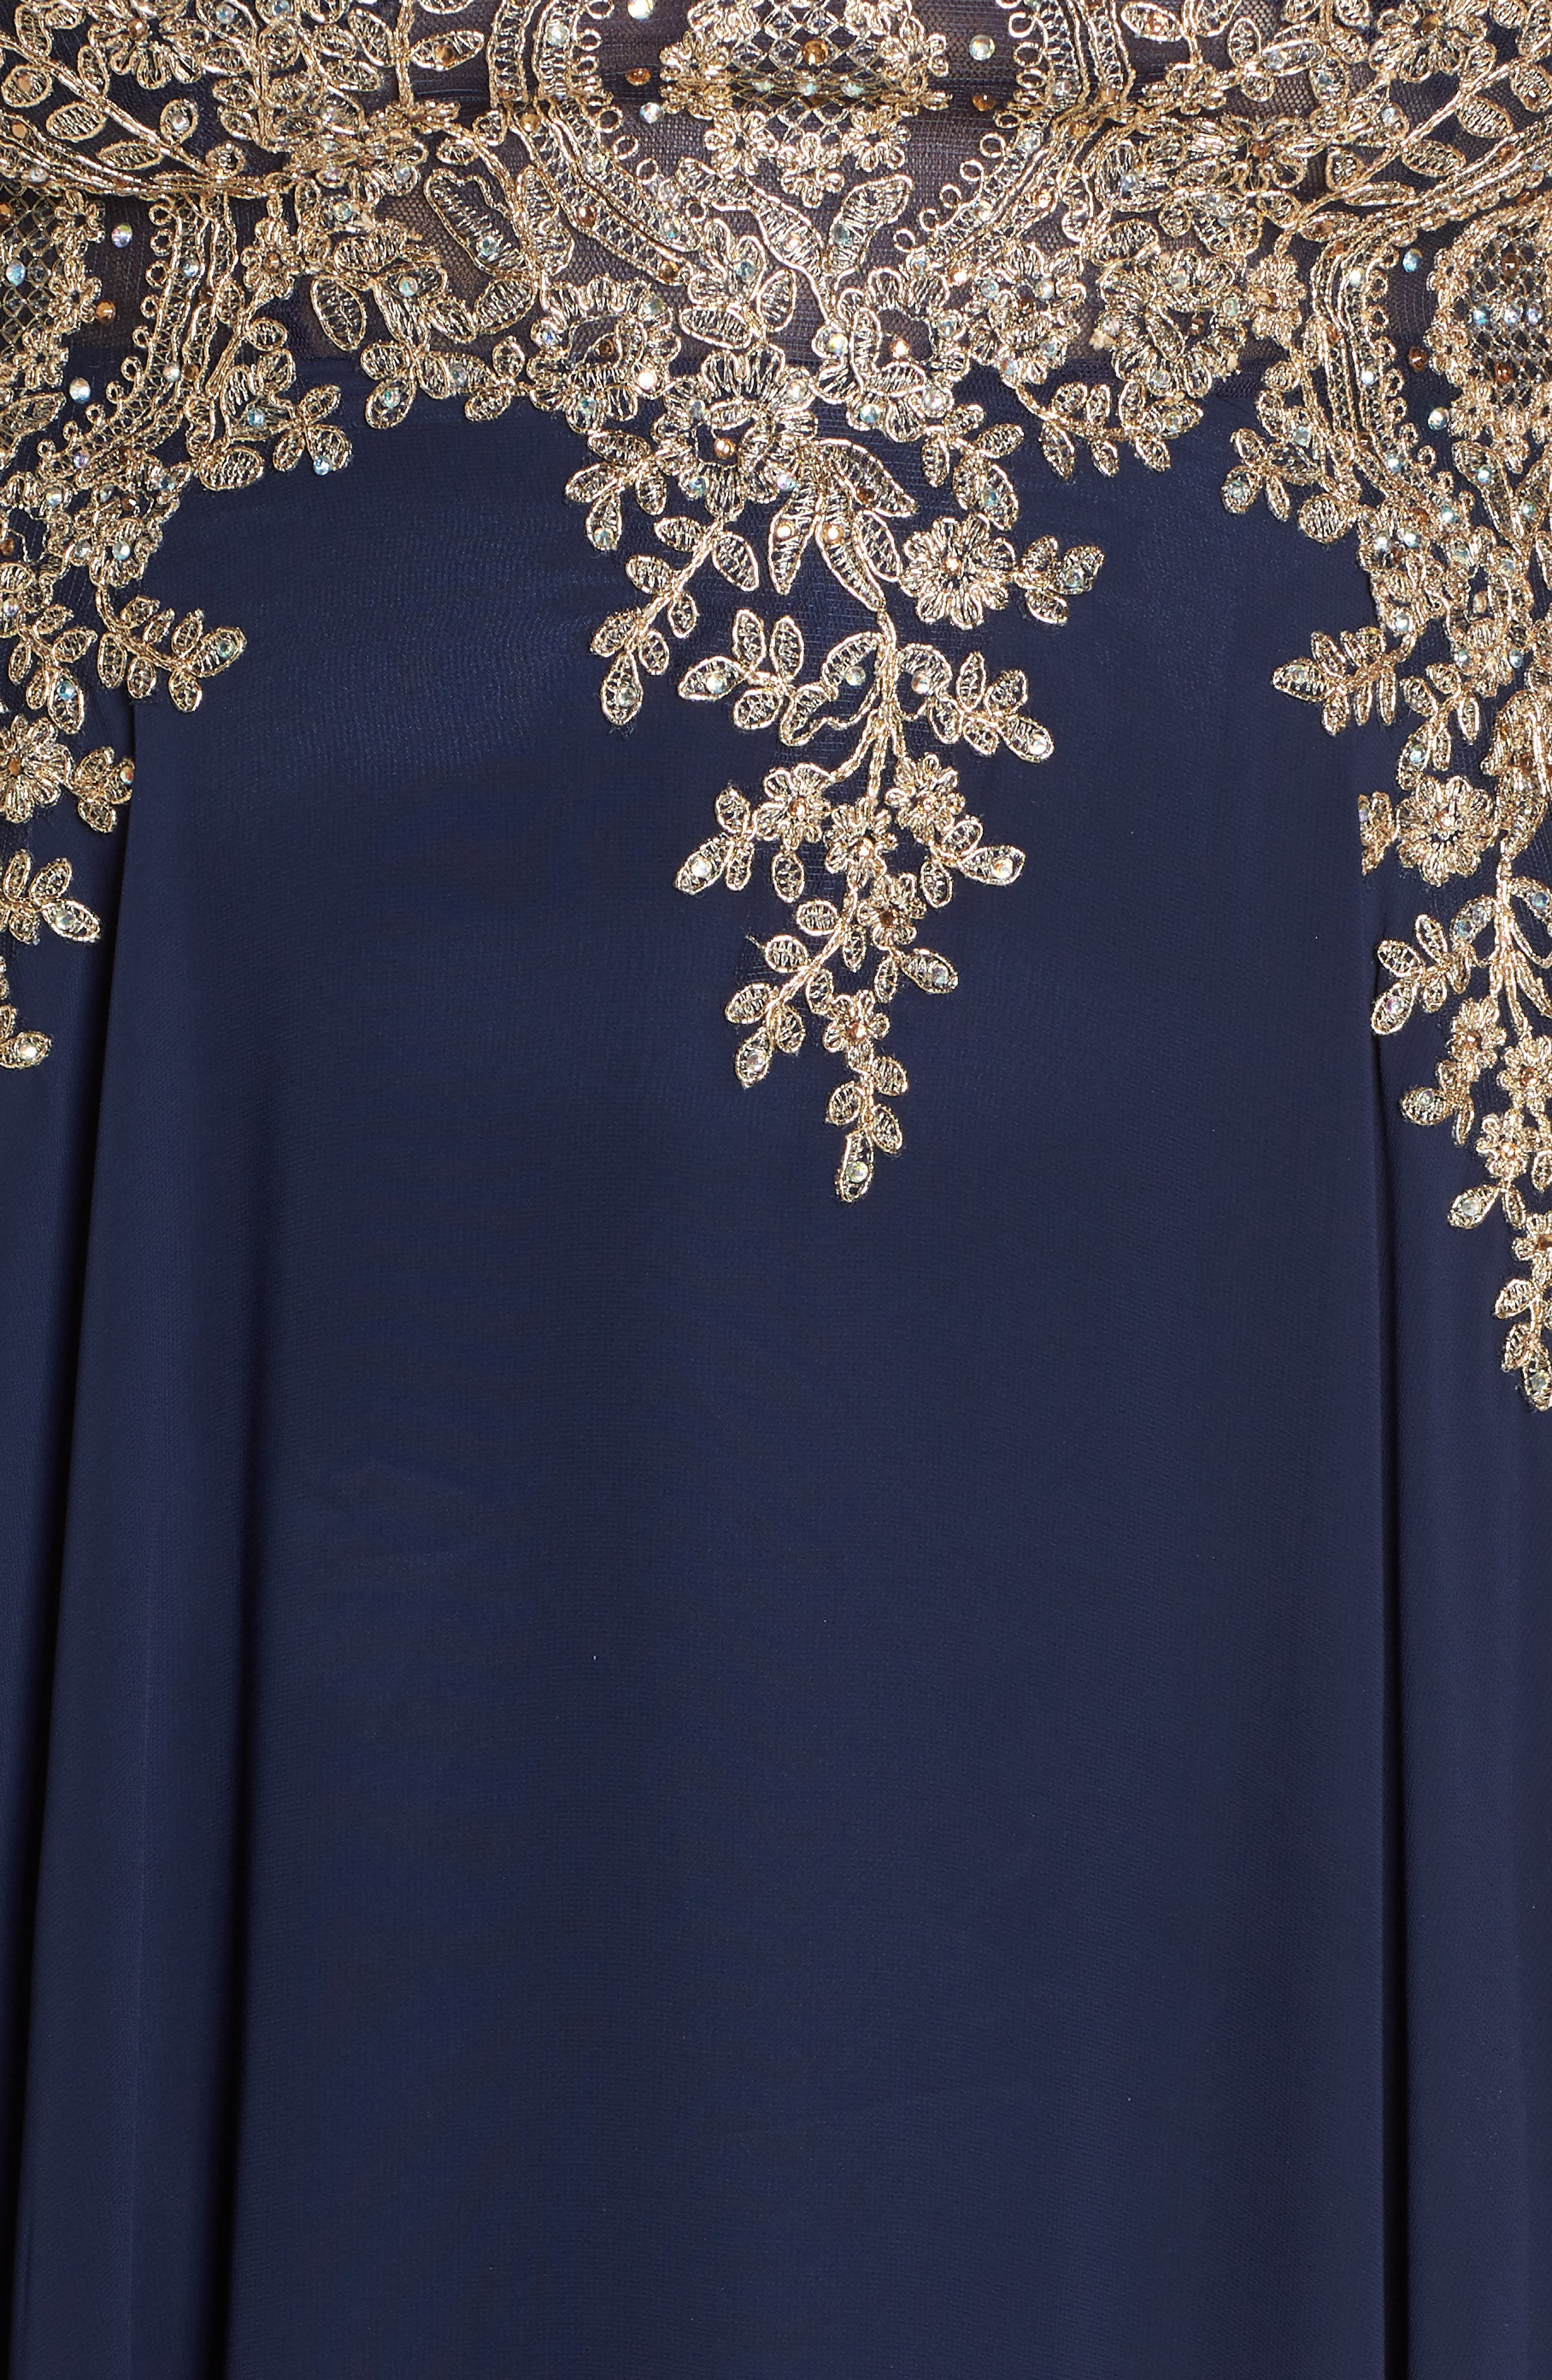 Metallic Embroidered Gown,                             Alternate thumbnail 6, color,                             NAVY/ GOLD